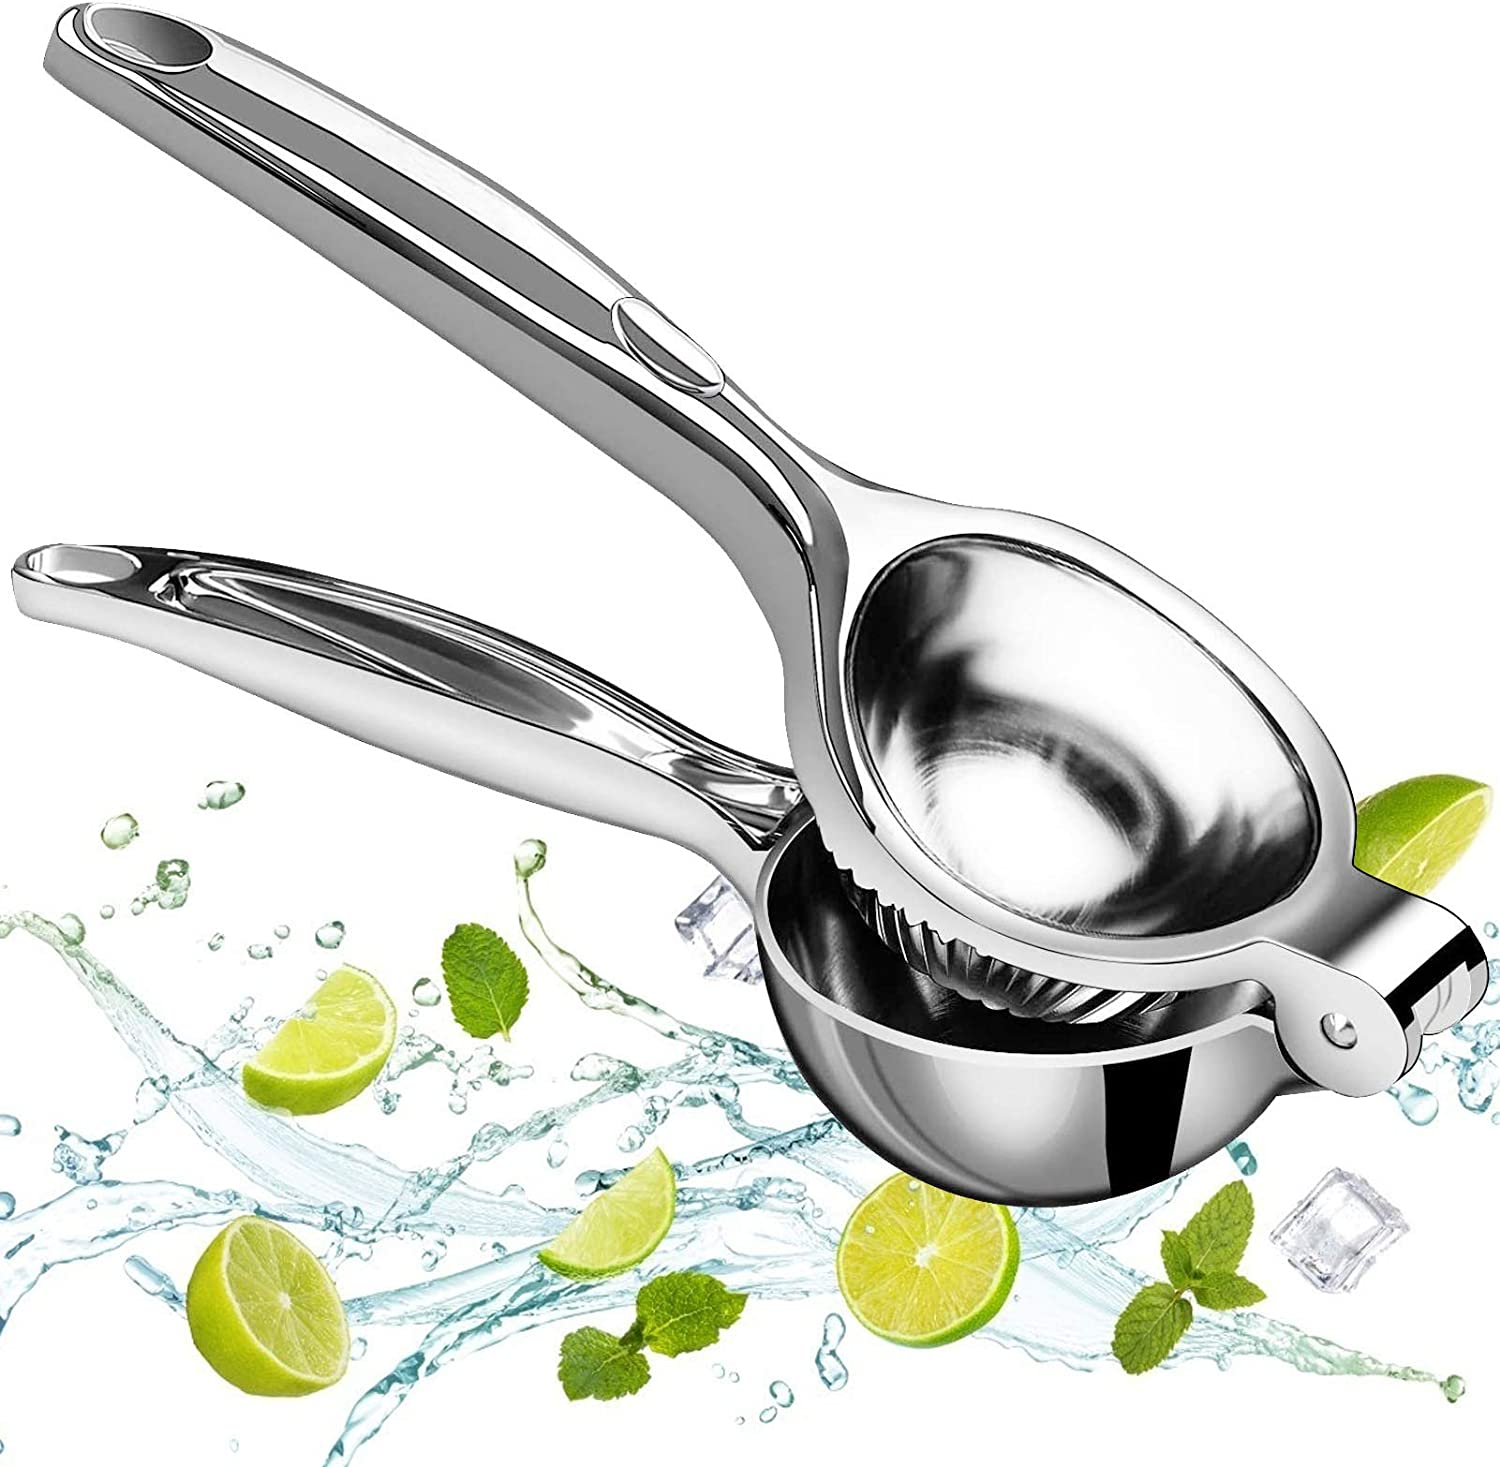 Hand Lime Lemon Squeezer Orange Citrus Juicer Handle Press Tool Manual Juicer for Extracting Lemon Juice and More Fruit